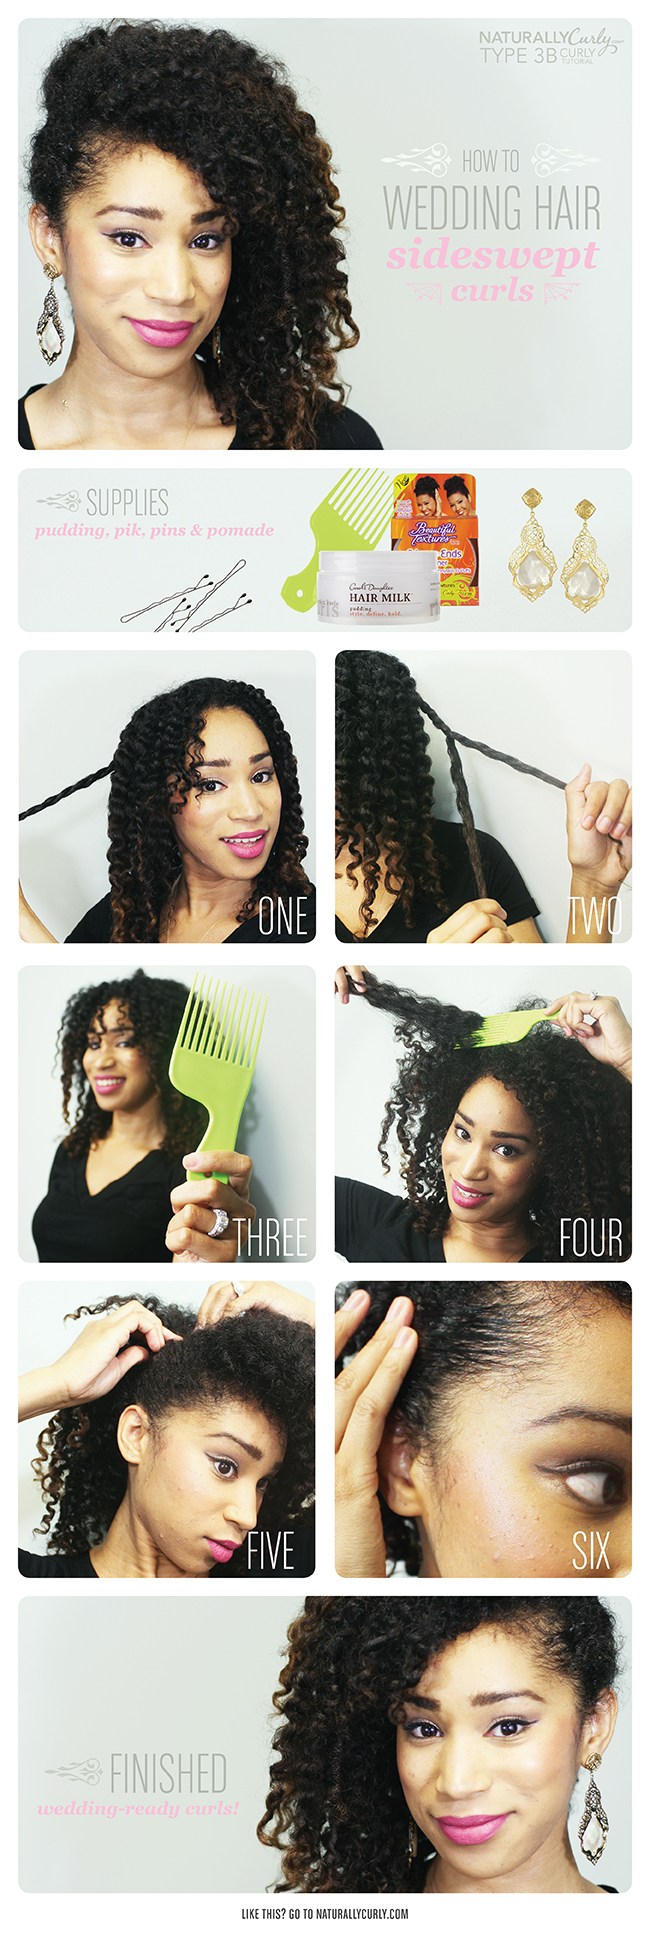 curly wedding hairstyle tutorial | video | naturallycurly